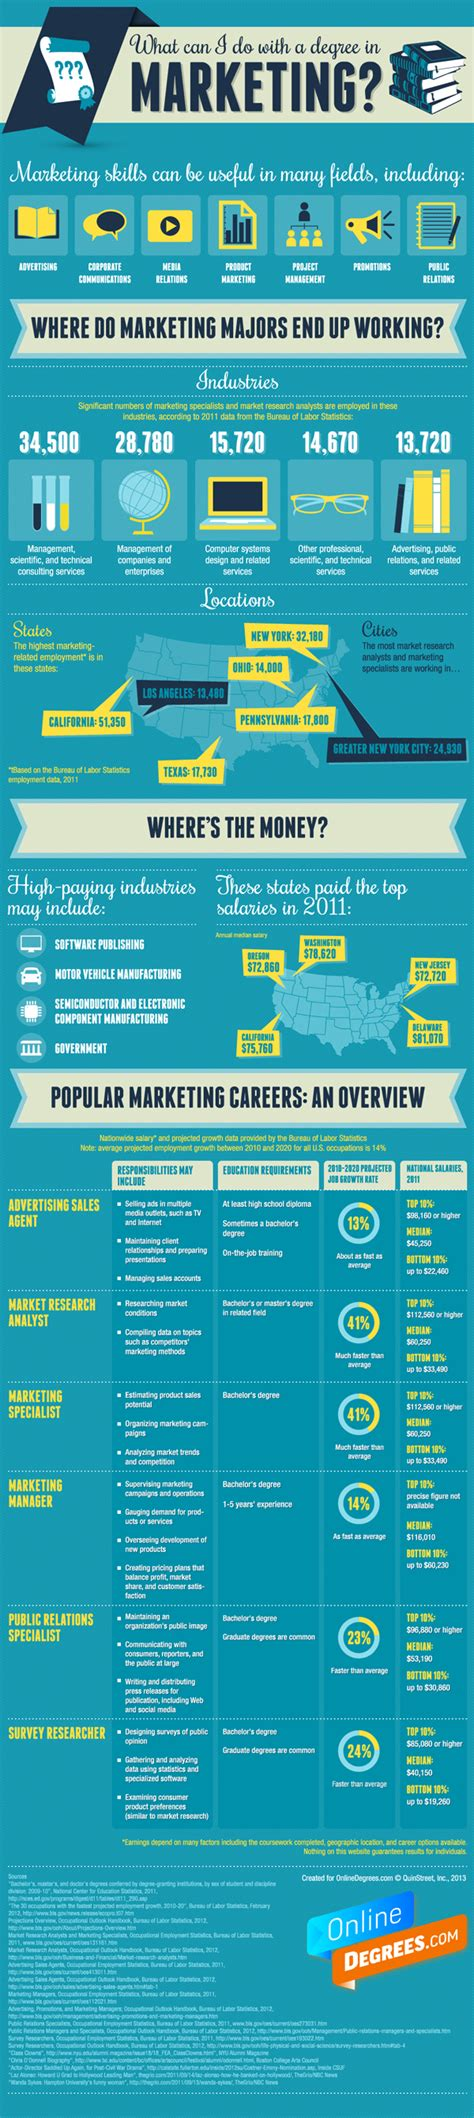 marketing degree what can i do with a degree in marketing infographic